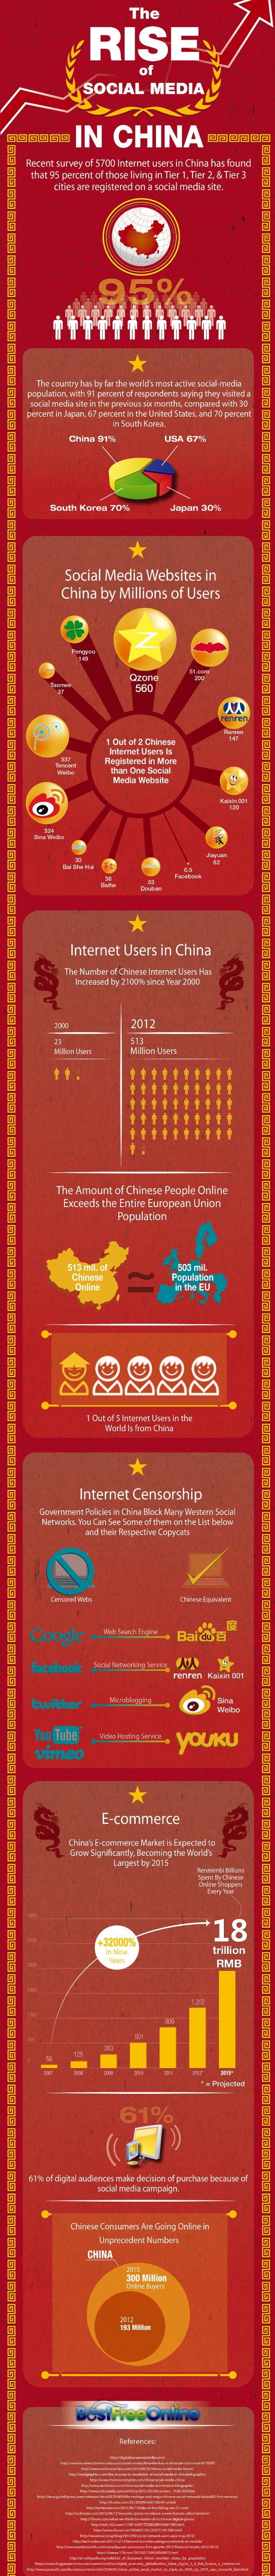 The Rise of Social Media in China Infographic 2012